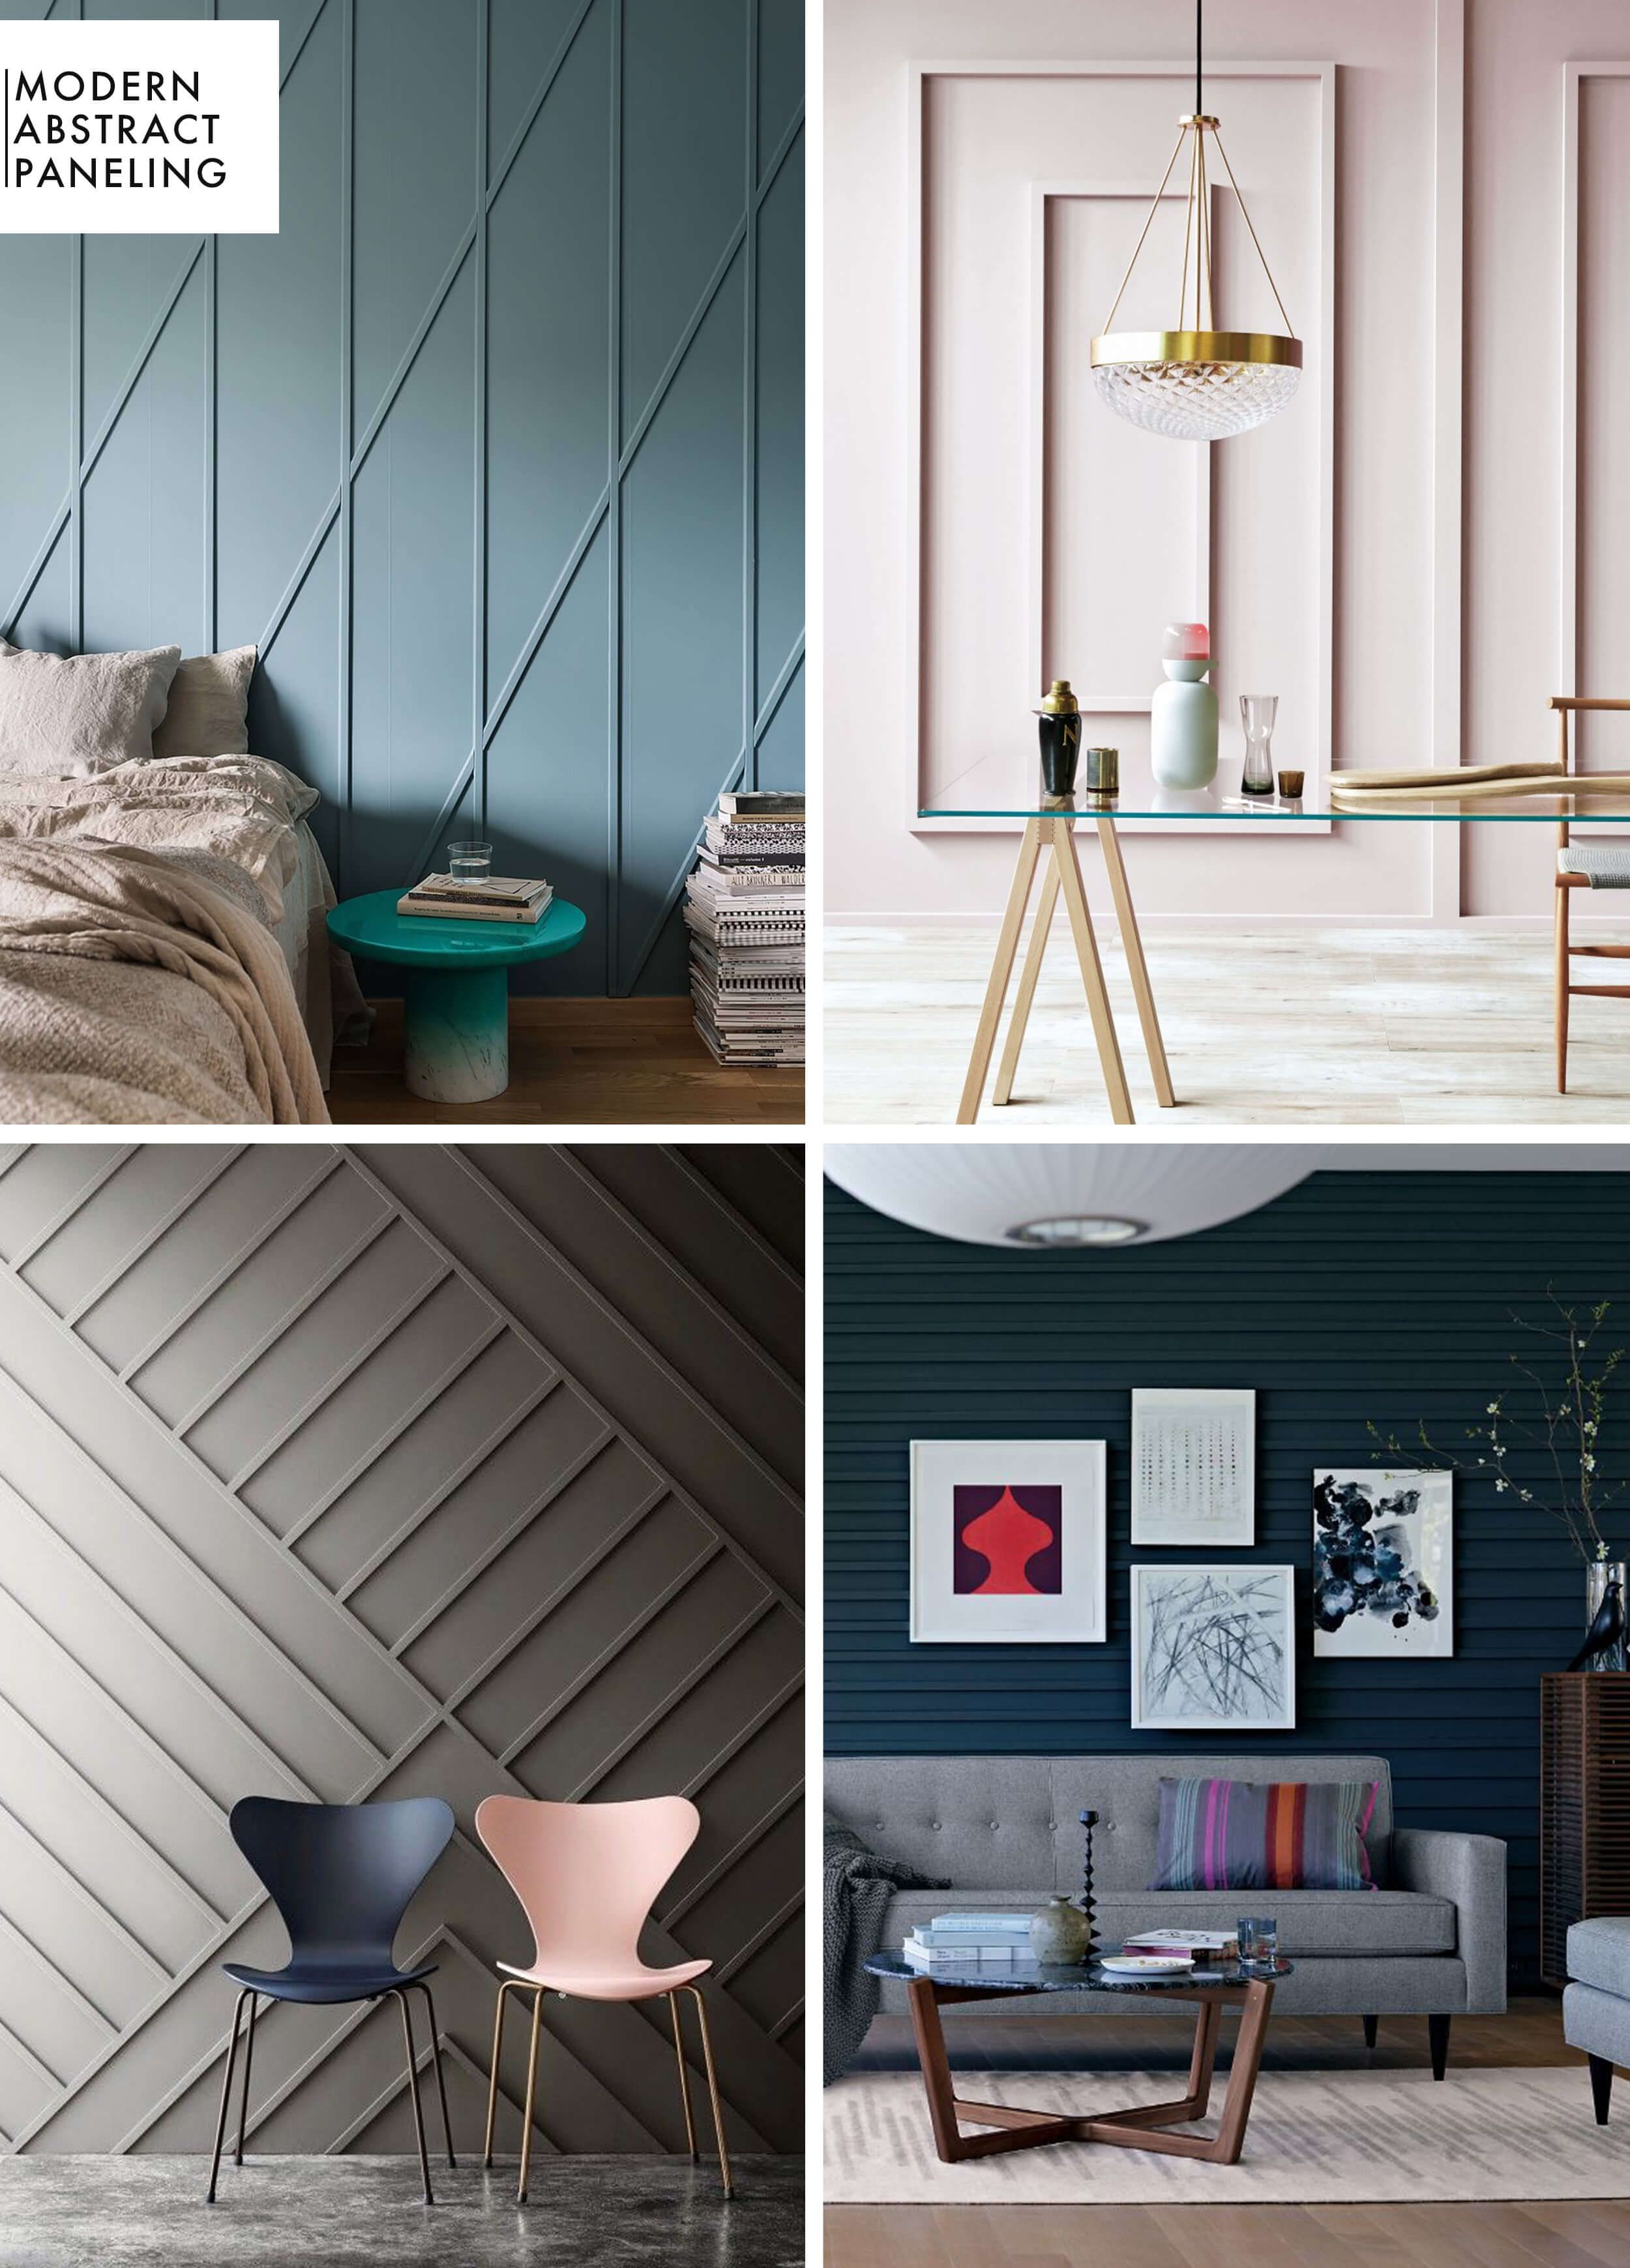 Abstract Room Designs: Add Character To Basic Architecture: Wall Paneling + A